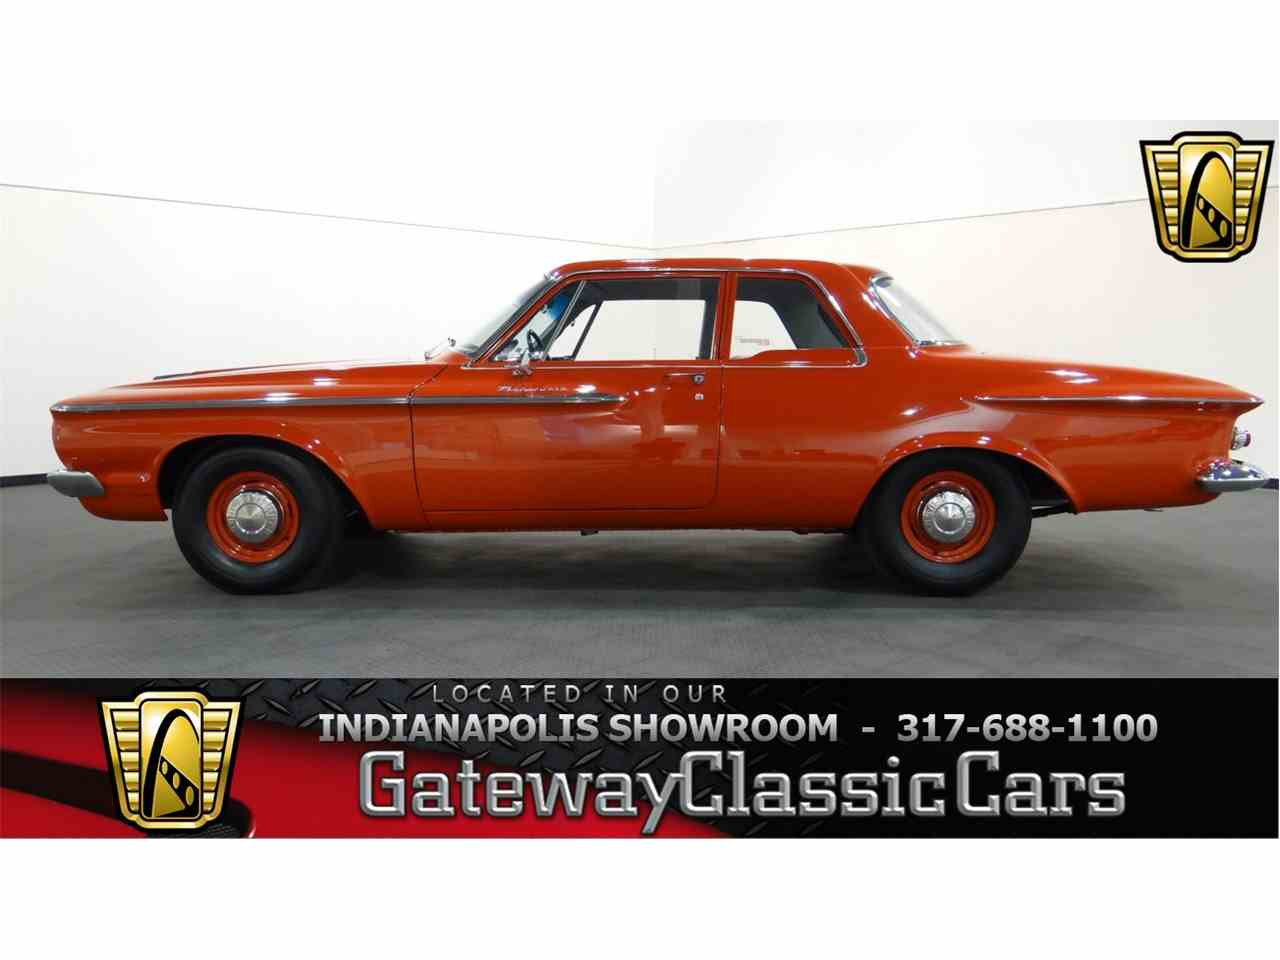 1965 Plymouth Belvedere Ii One Of My Favorite Colors Just Happens Wiring Diagrams 1962 V8 Savoy And Fury Large Picture 62 Ke98